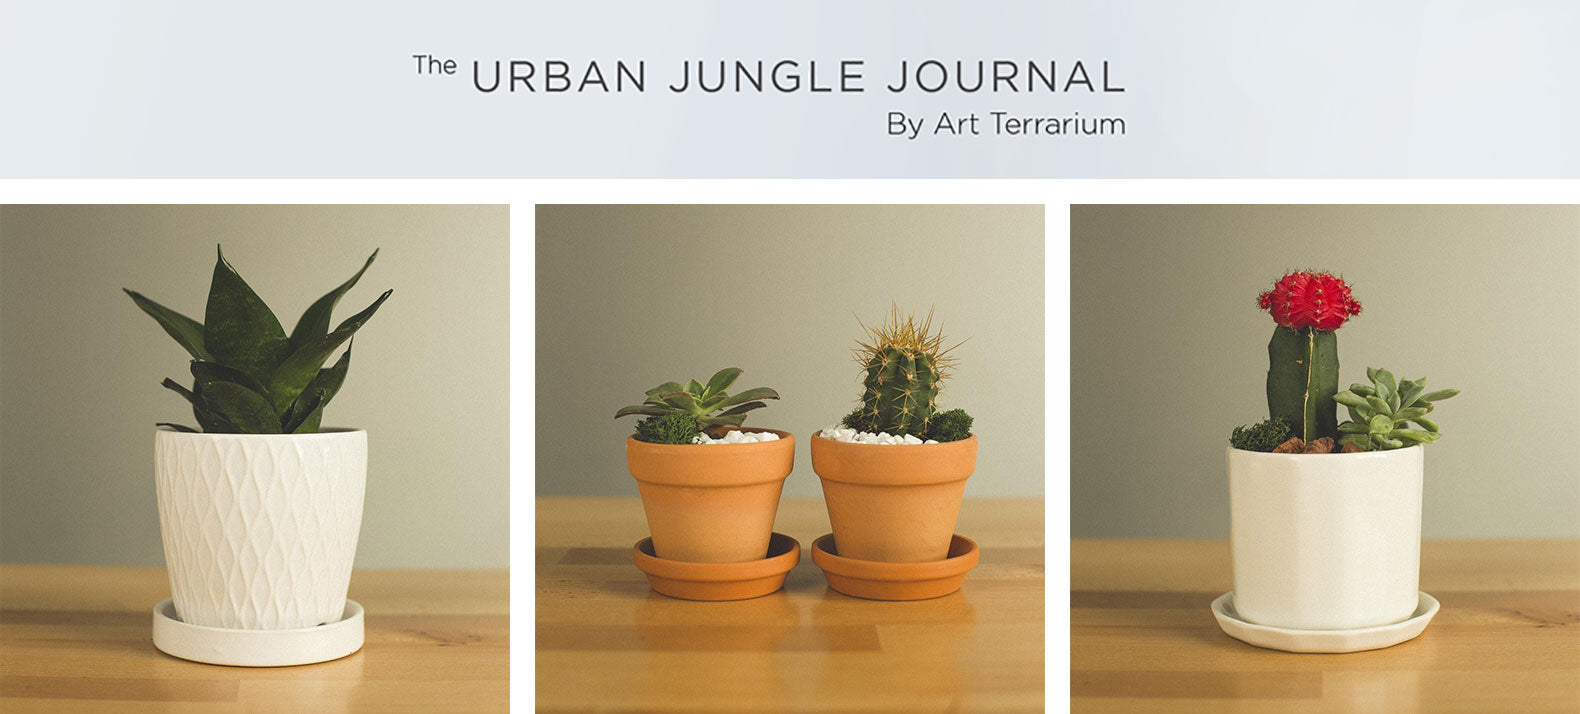 Art Terrarium holiday gifts